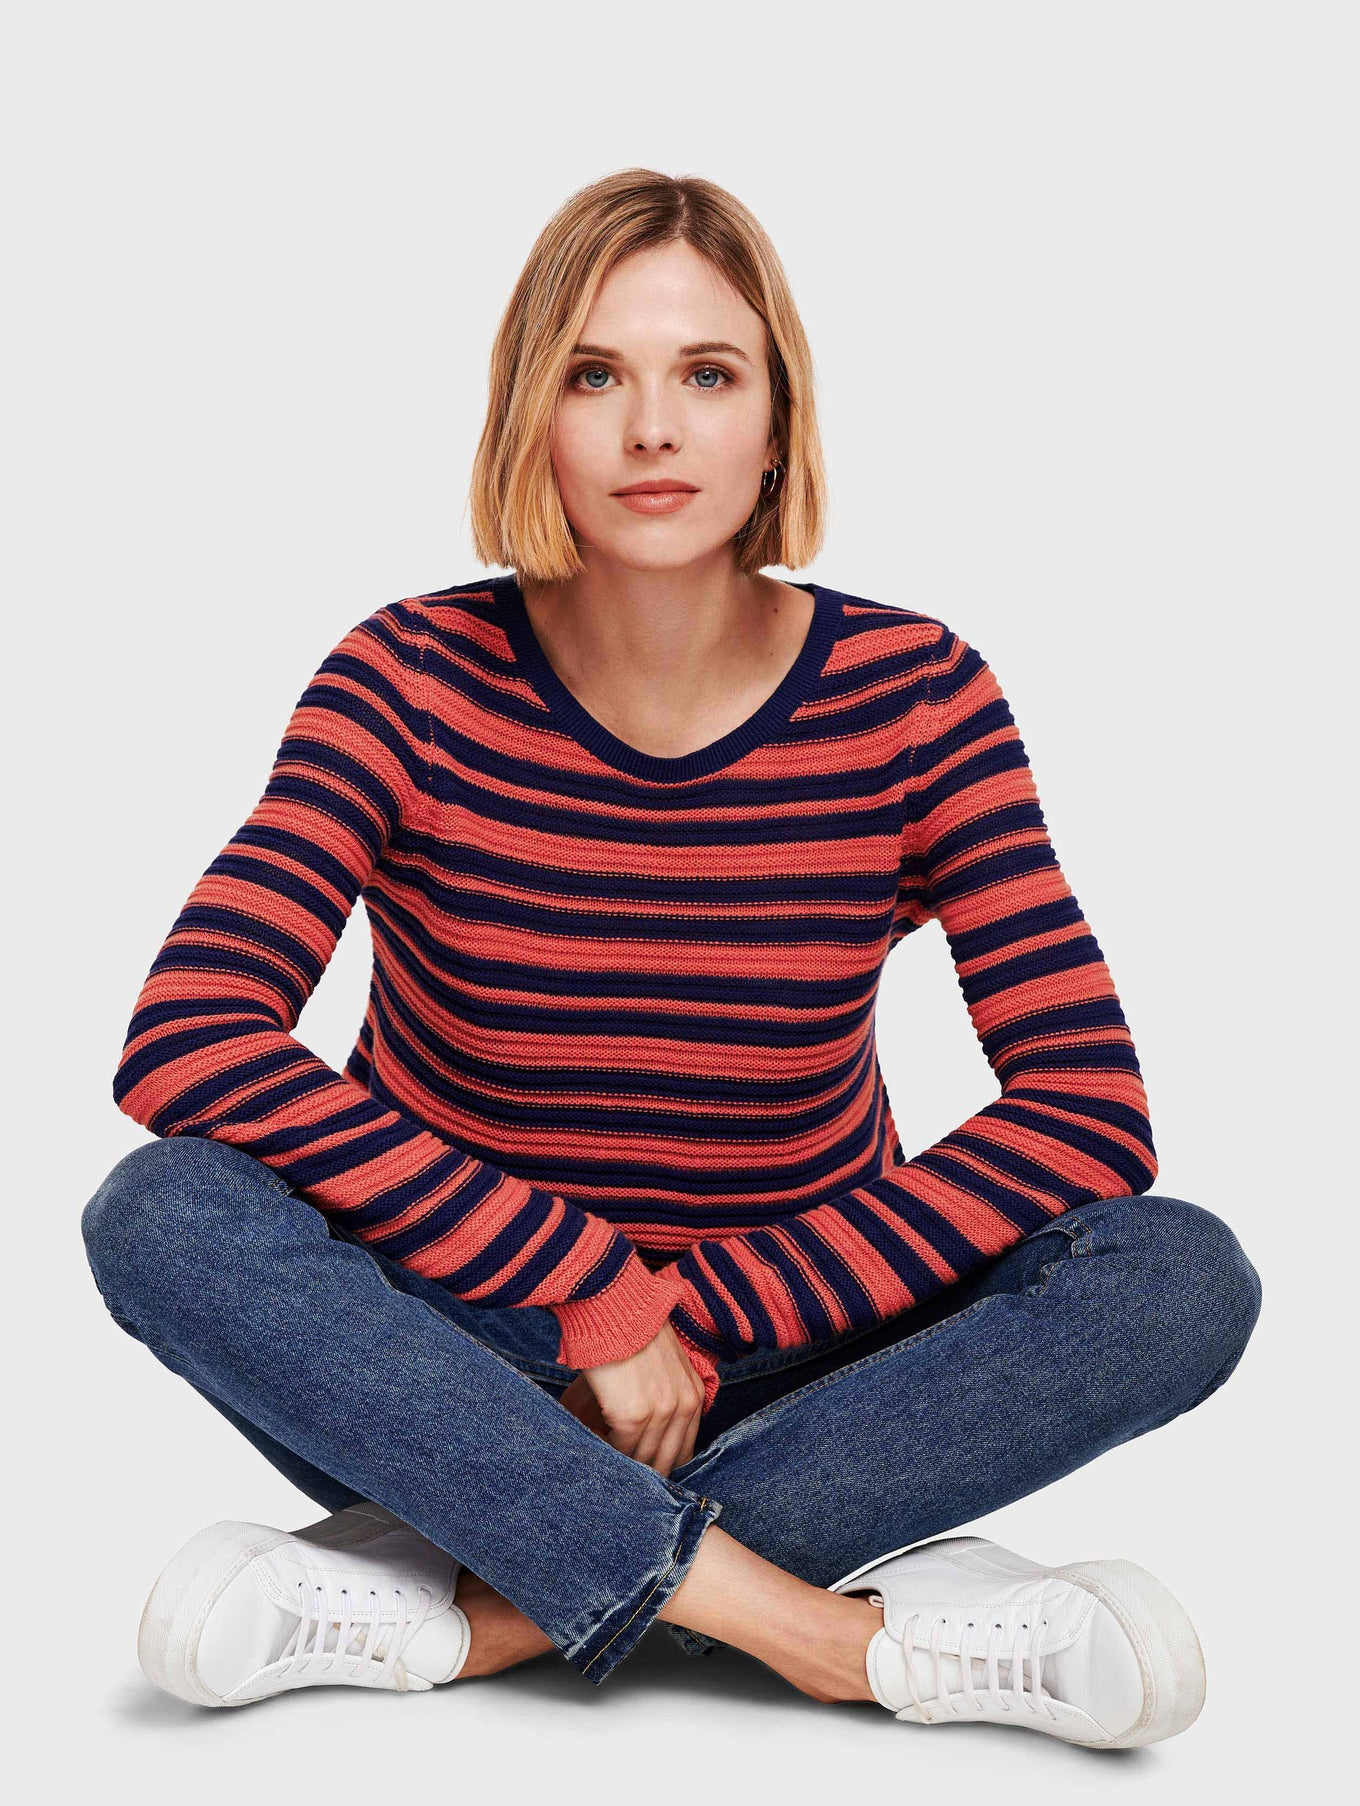 Cotton Slub Striped Swing Open Crewneck - Ocean/Rose - Image 1